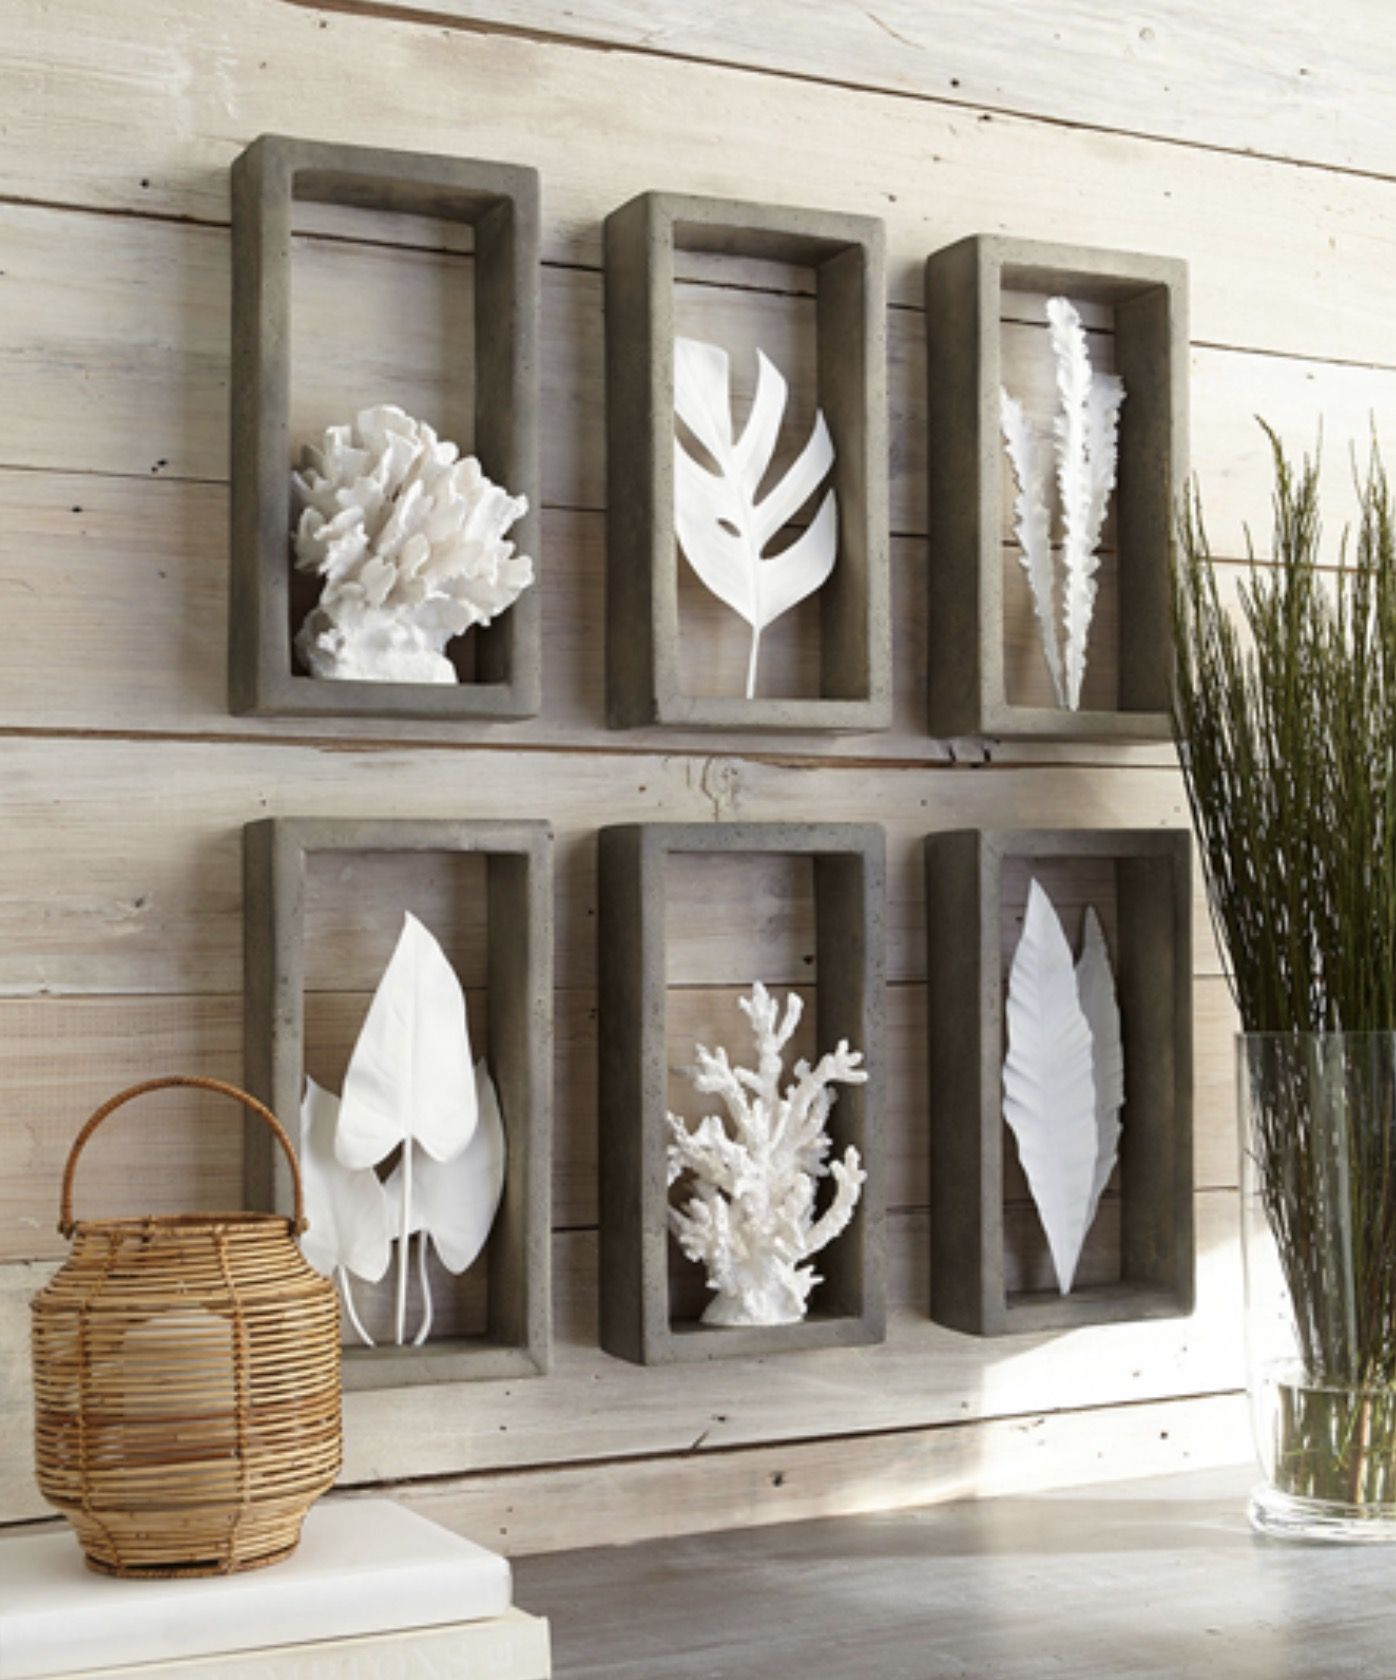 Wall shelves with white accessories create an attractive coastal wall shelves with white accessories create an attractive coastal display adding fantastic texture to the room amipublicfo Images